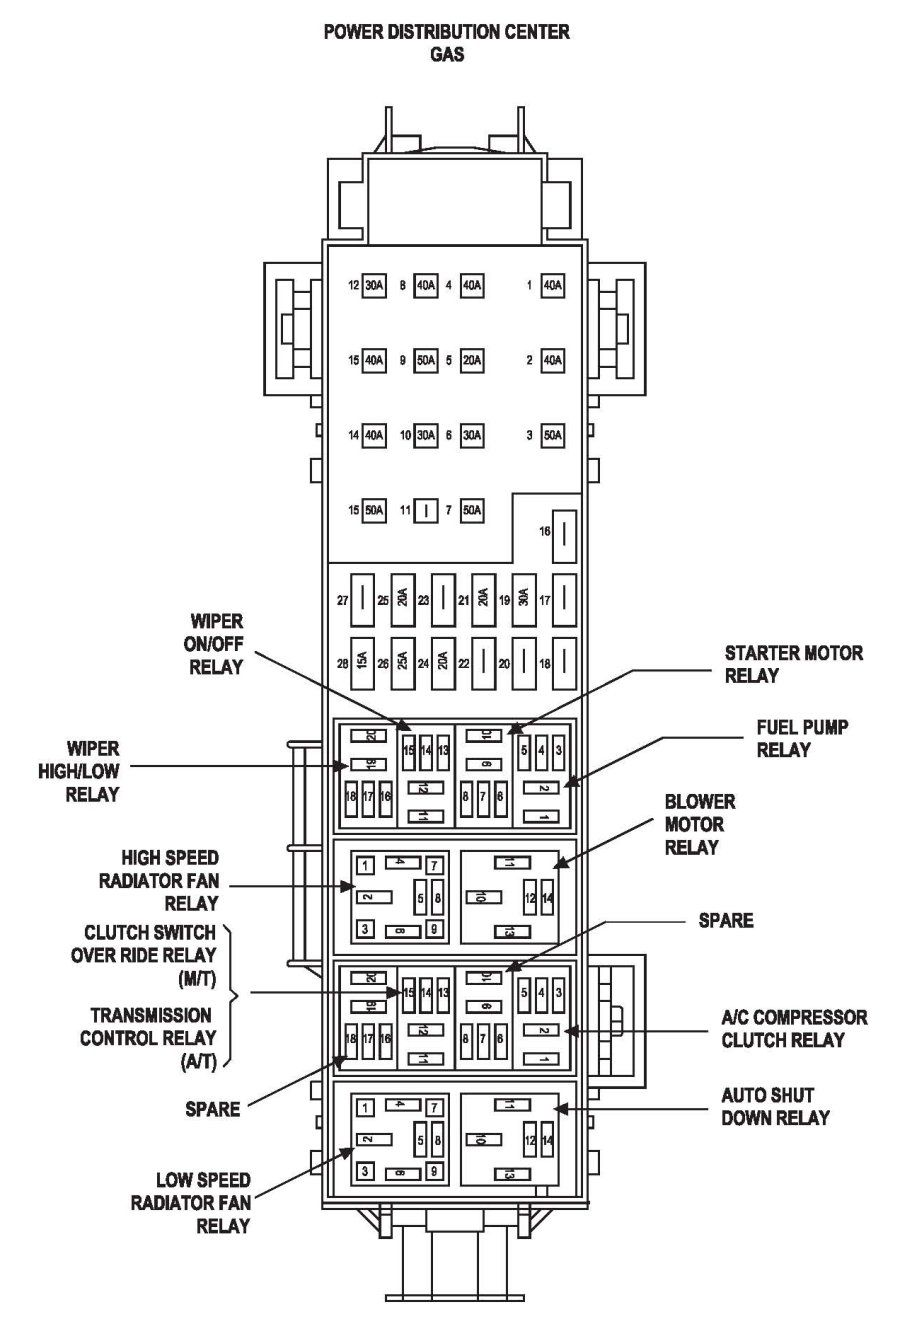 jeep liberty fuse box diagram image details jeep liberty rh pinterest com